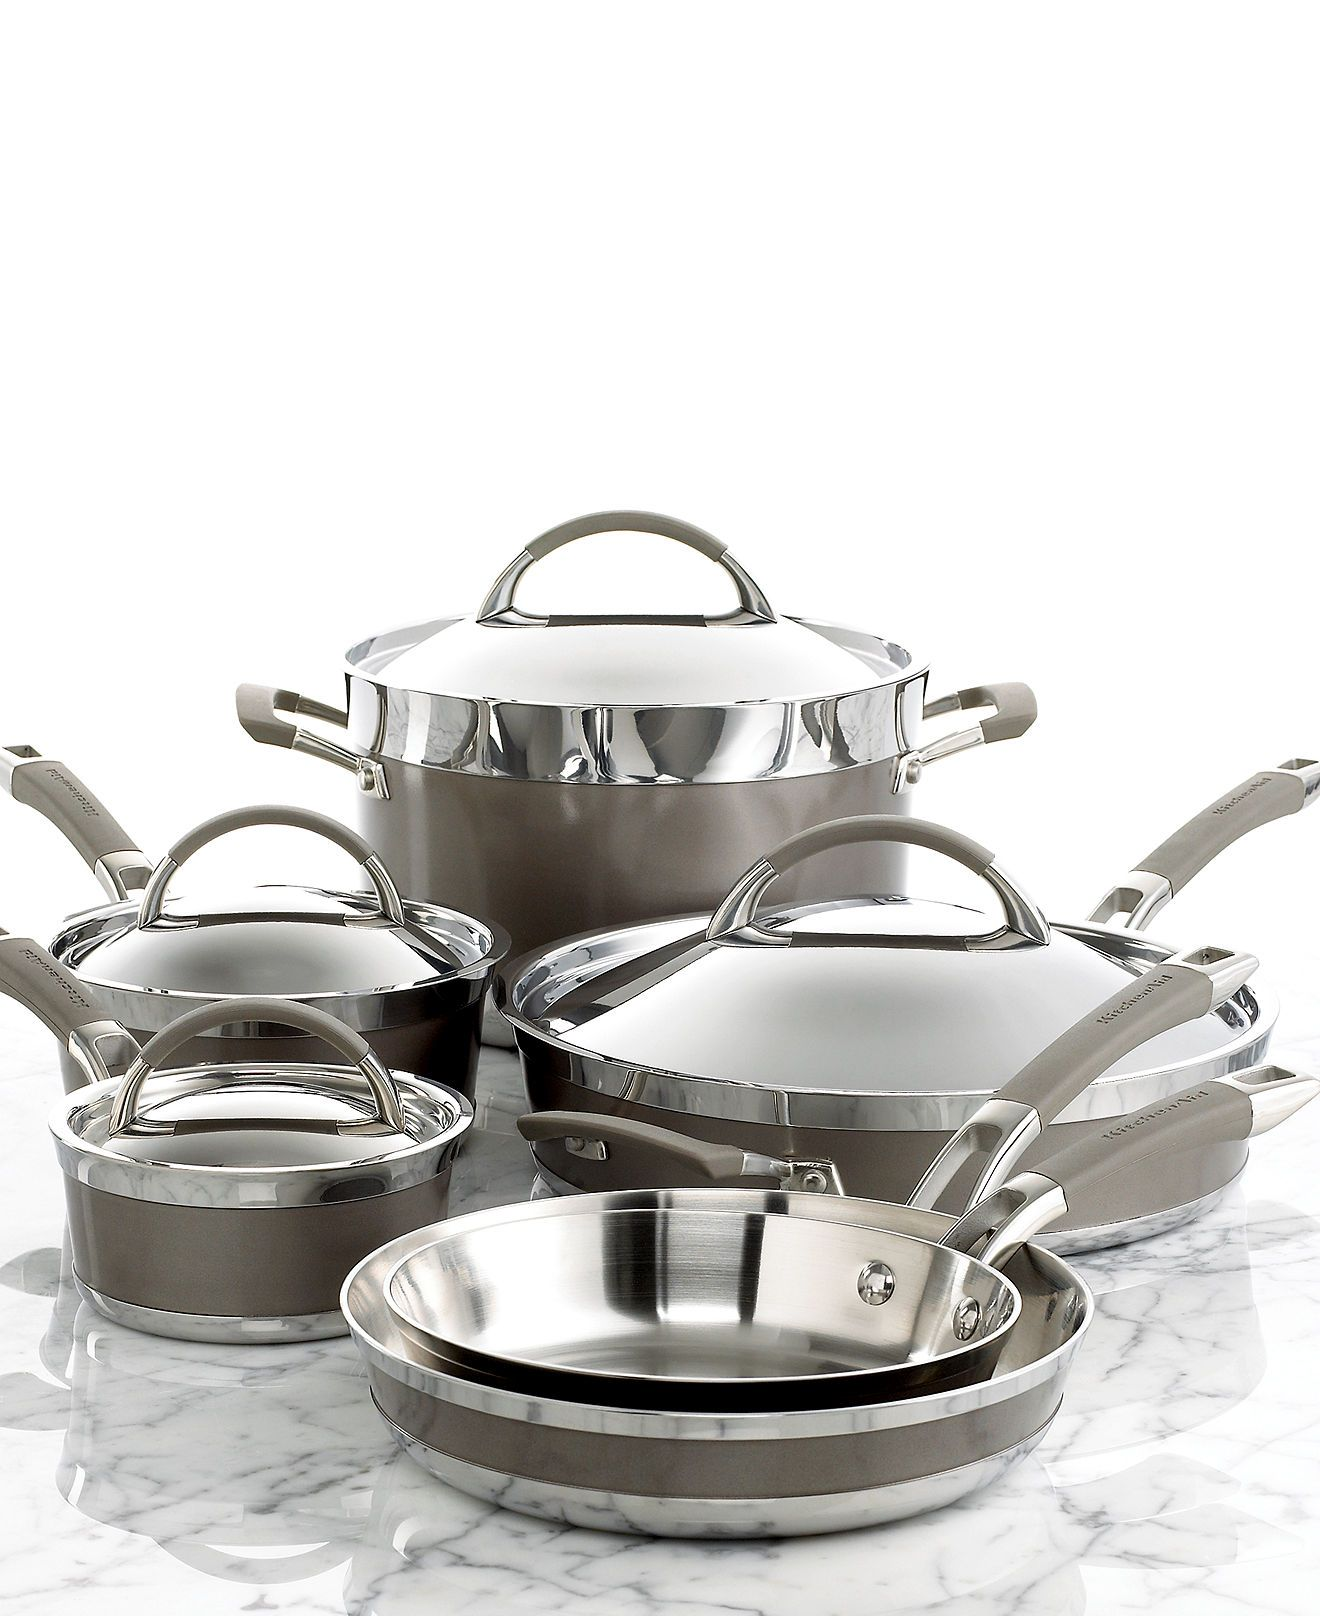 kitchen aid cookware space saving radiators pots and pans kitchenaid architect series pinterest